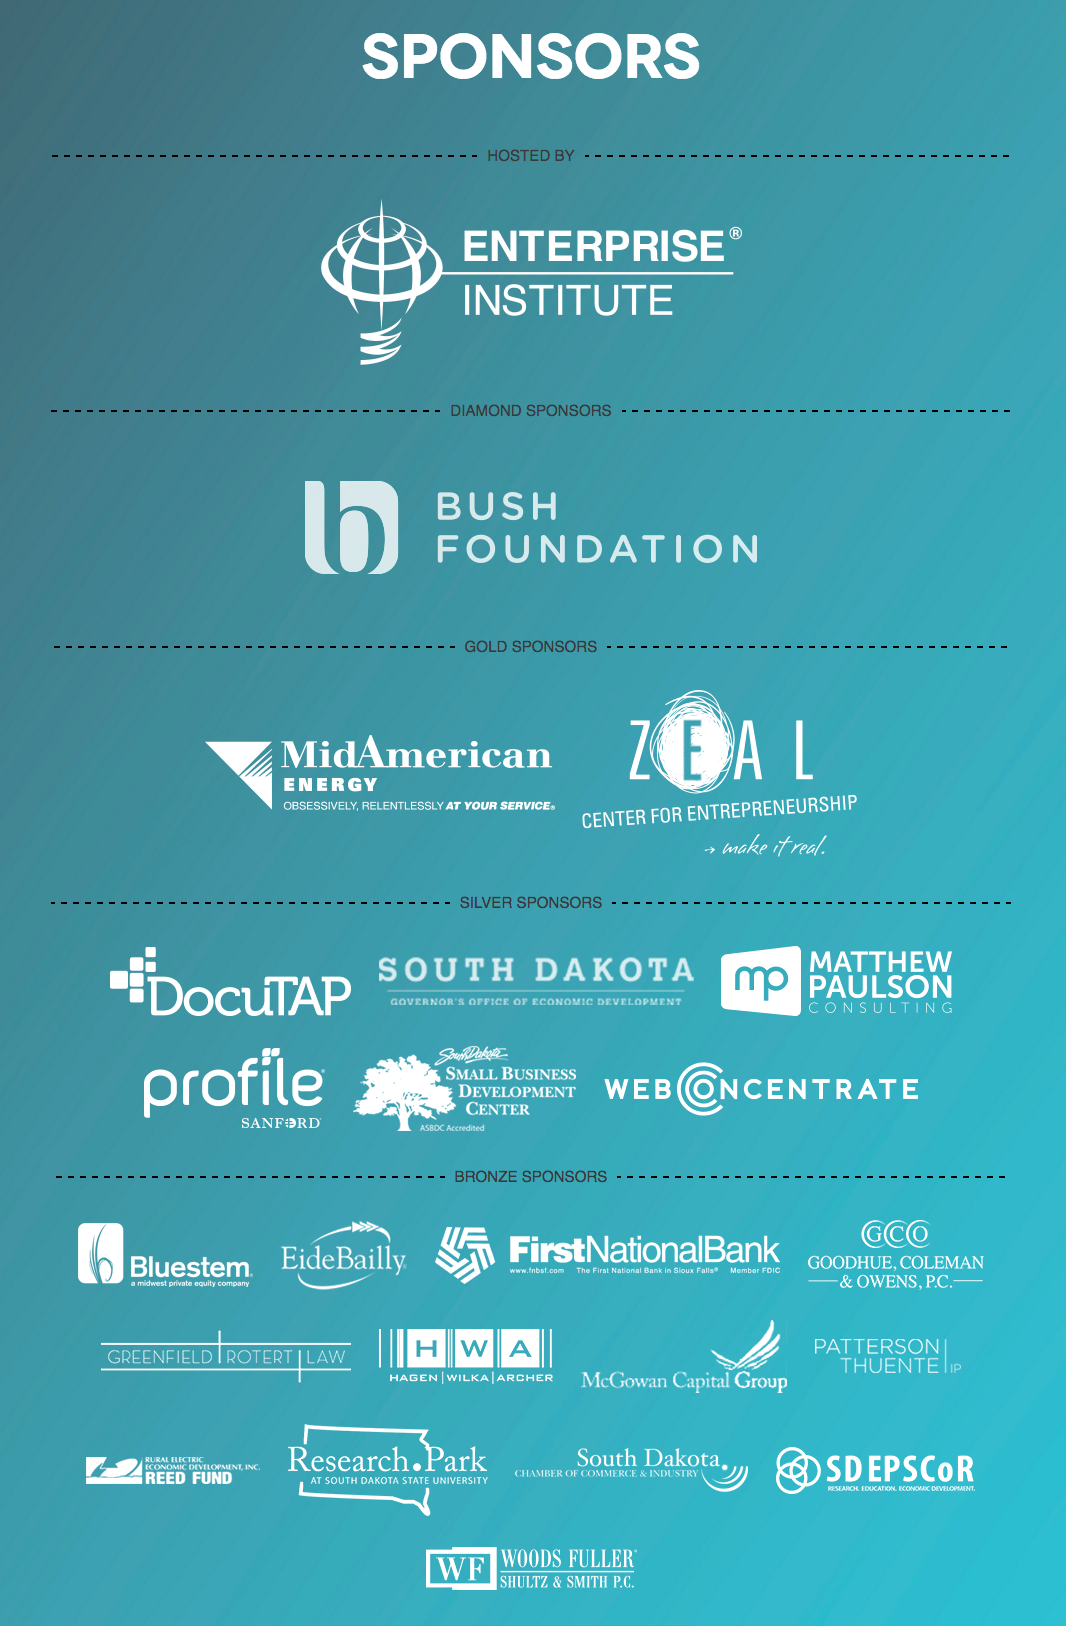 sioux-falls-innovation-expo-sponsors-2016.png